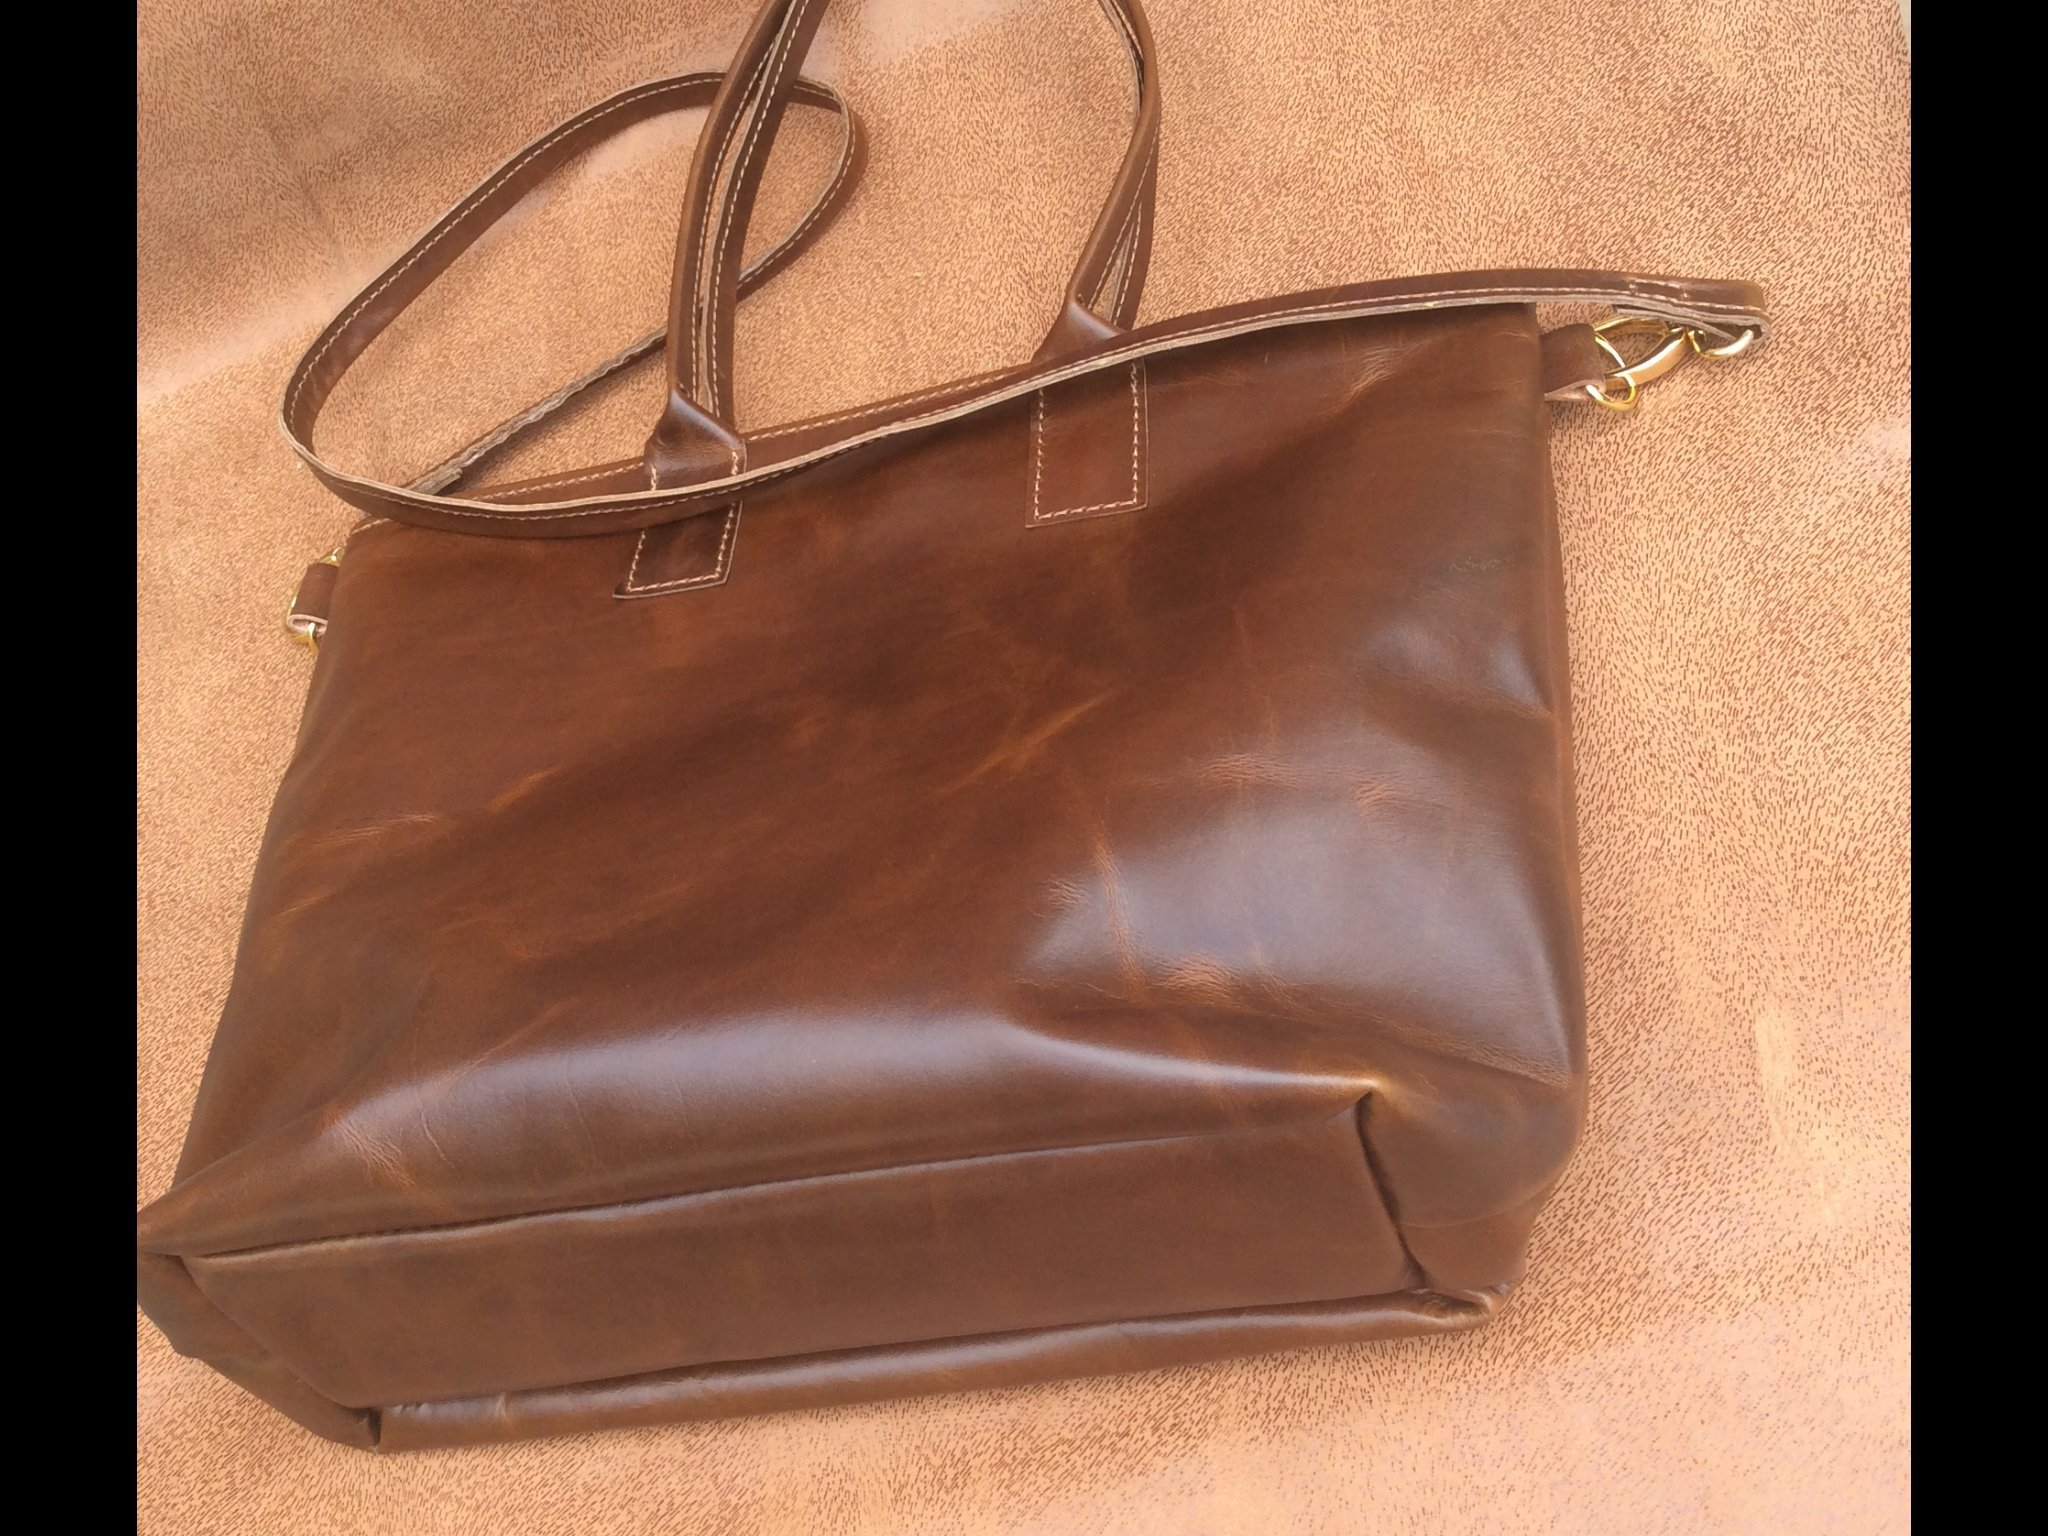 leather tote bag with zipper, leather tote bag, leather tote handbags for women, leather tote purse, leather tote purse, leather tote laptop, leather handbags, leather shoulder bags.